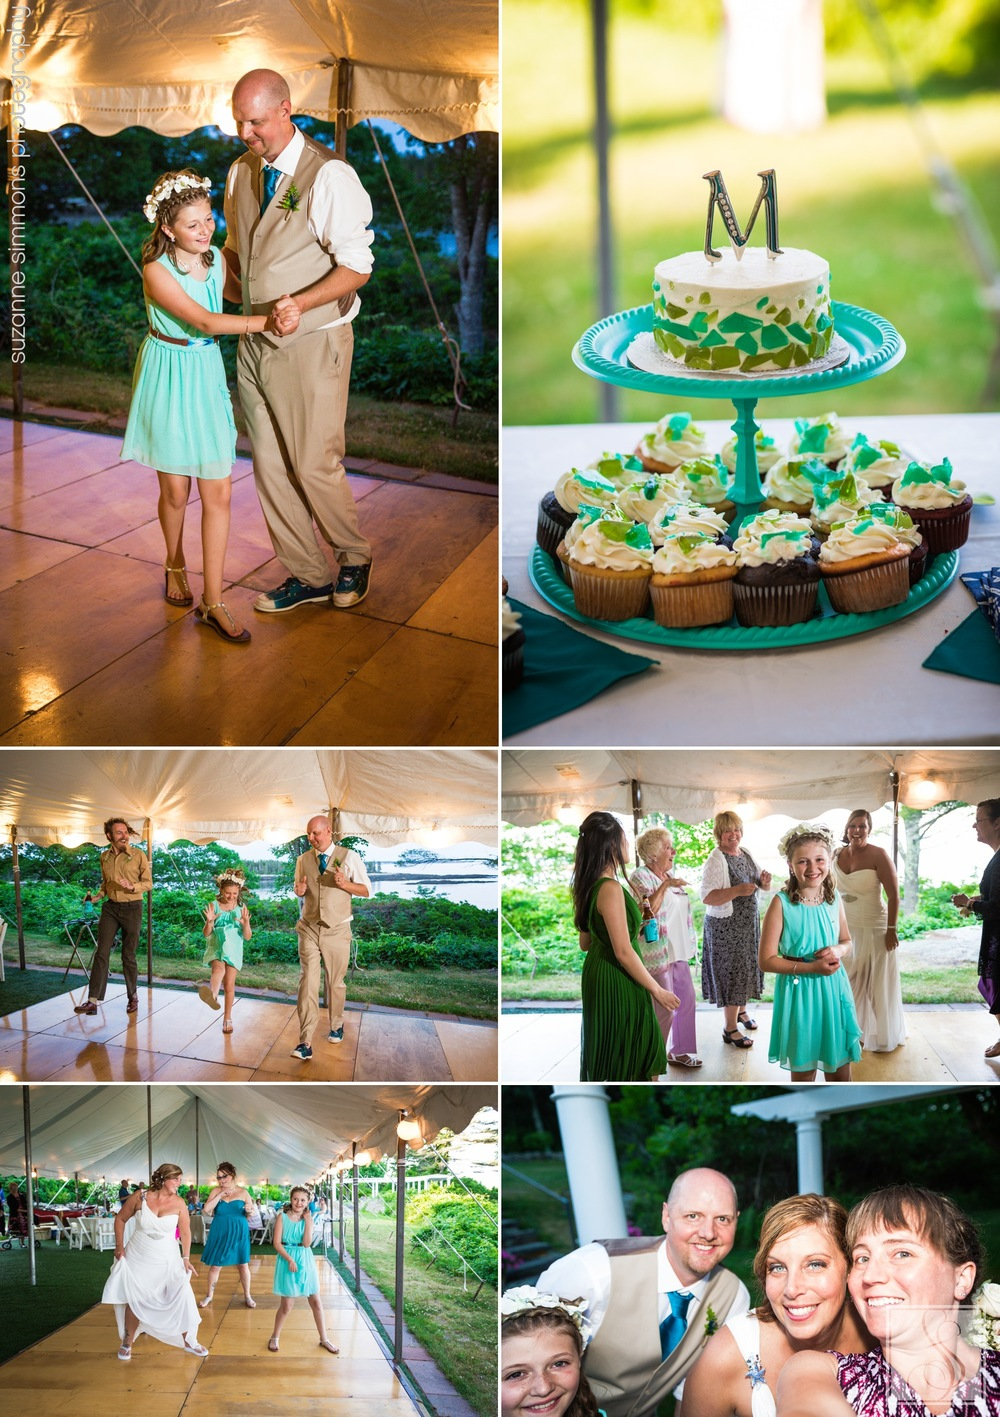 Tented wedding reception in Maine at The Mooring Bed & Breakfast